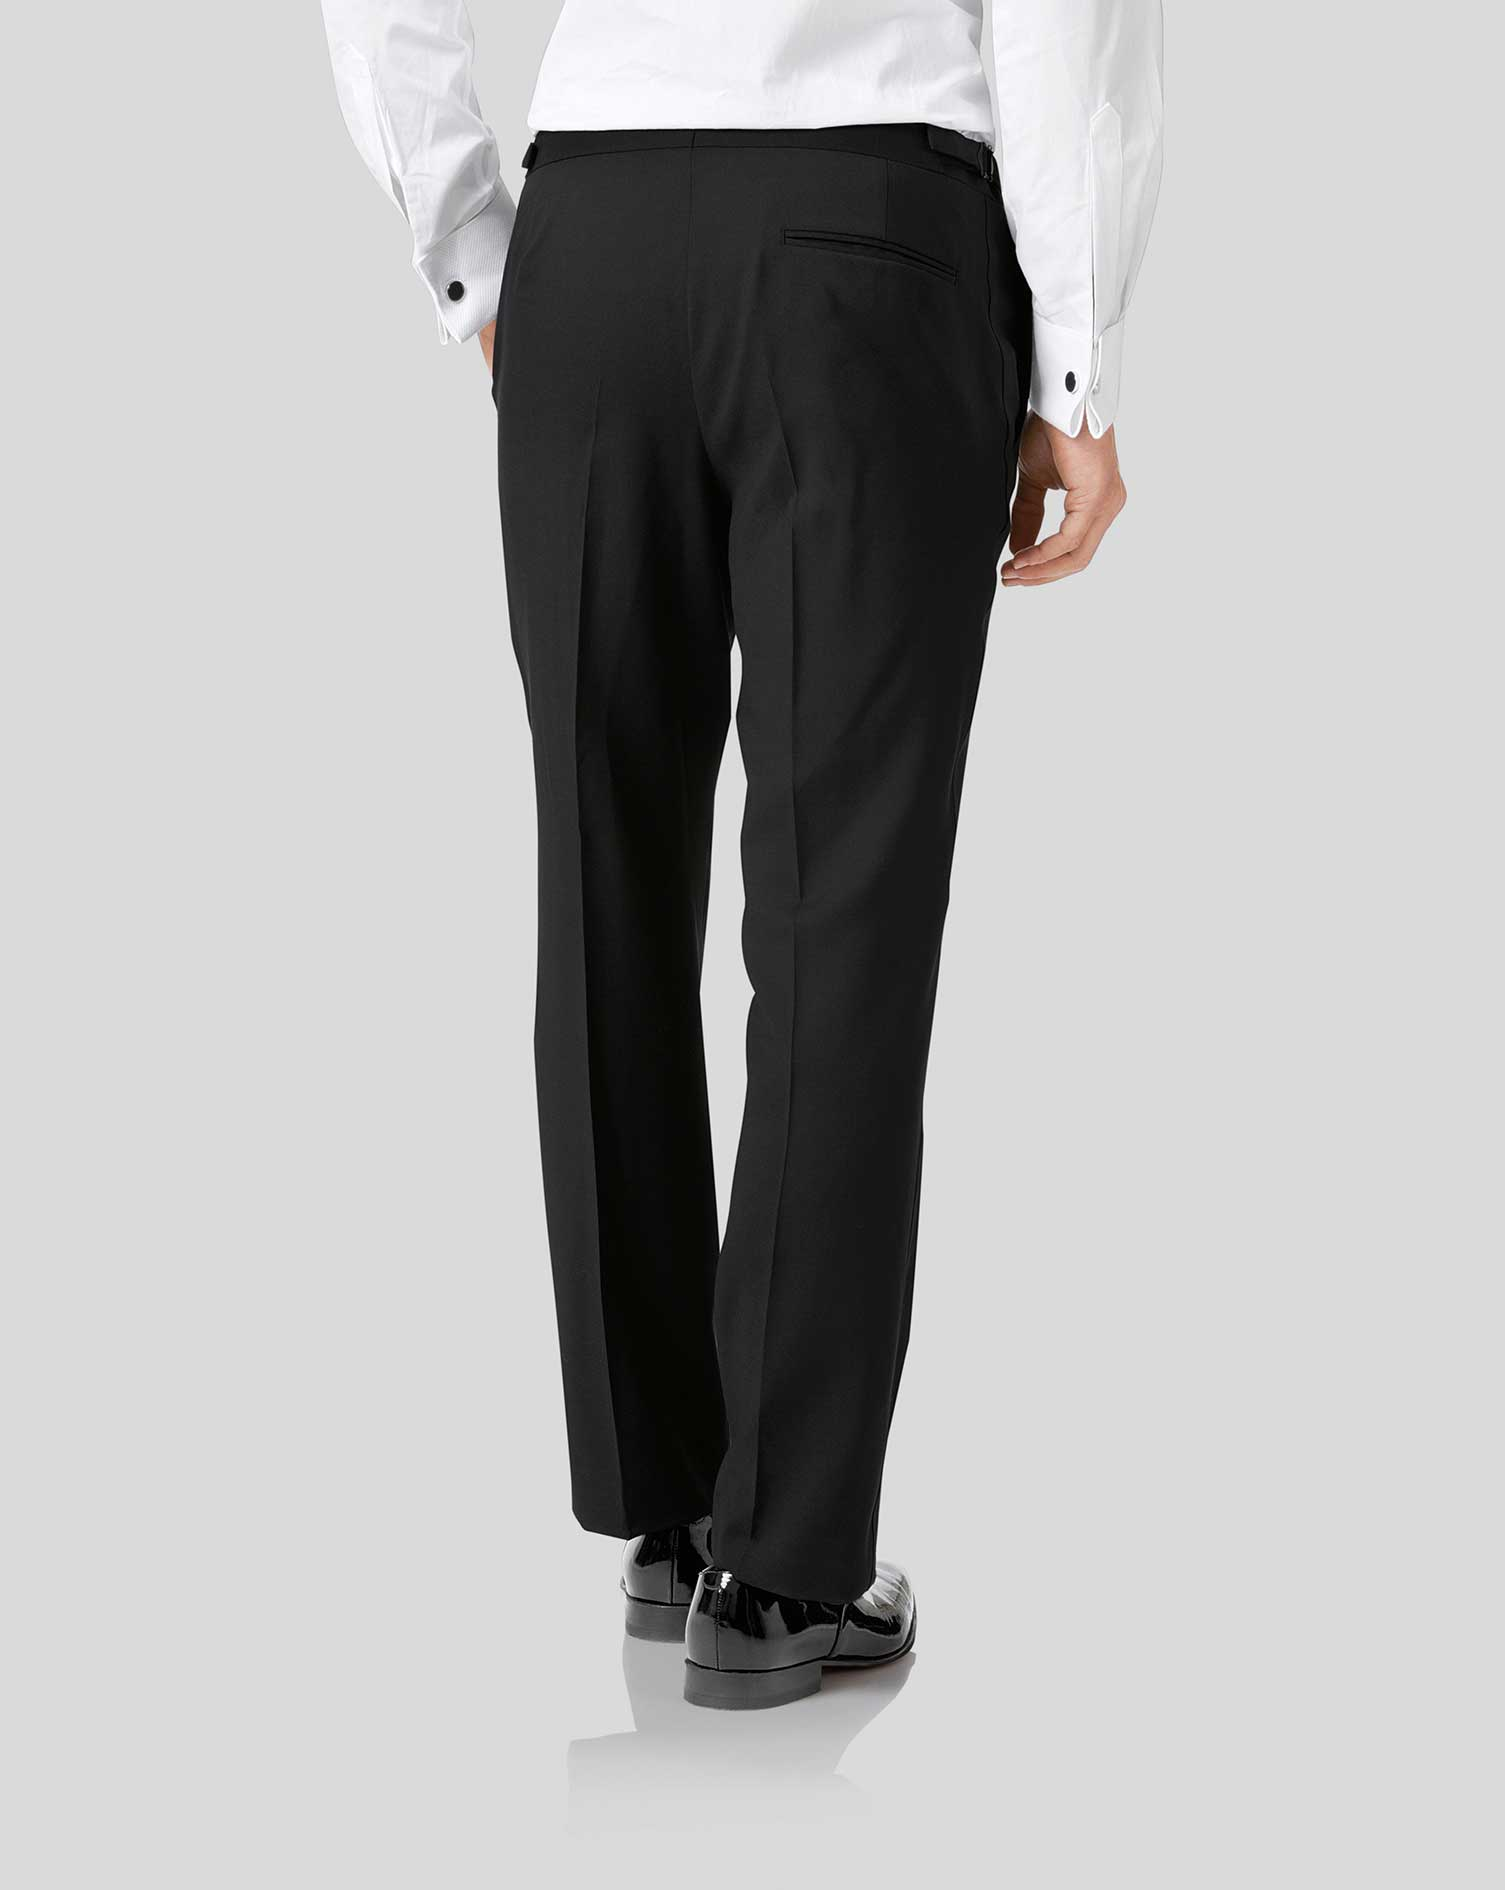 Black classic fit tuxedo trousers